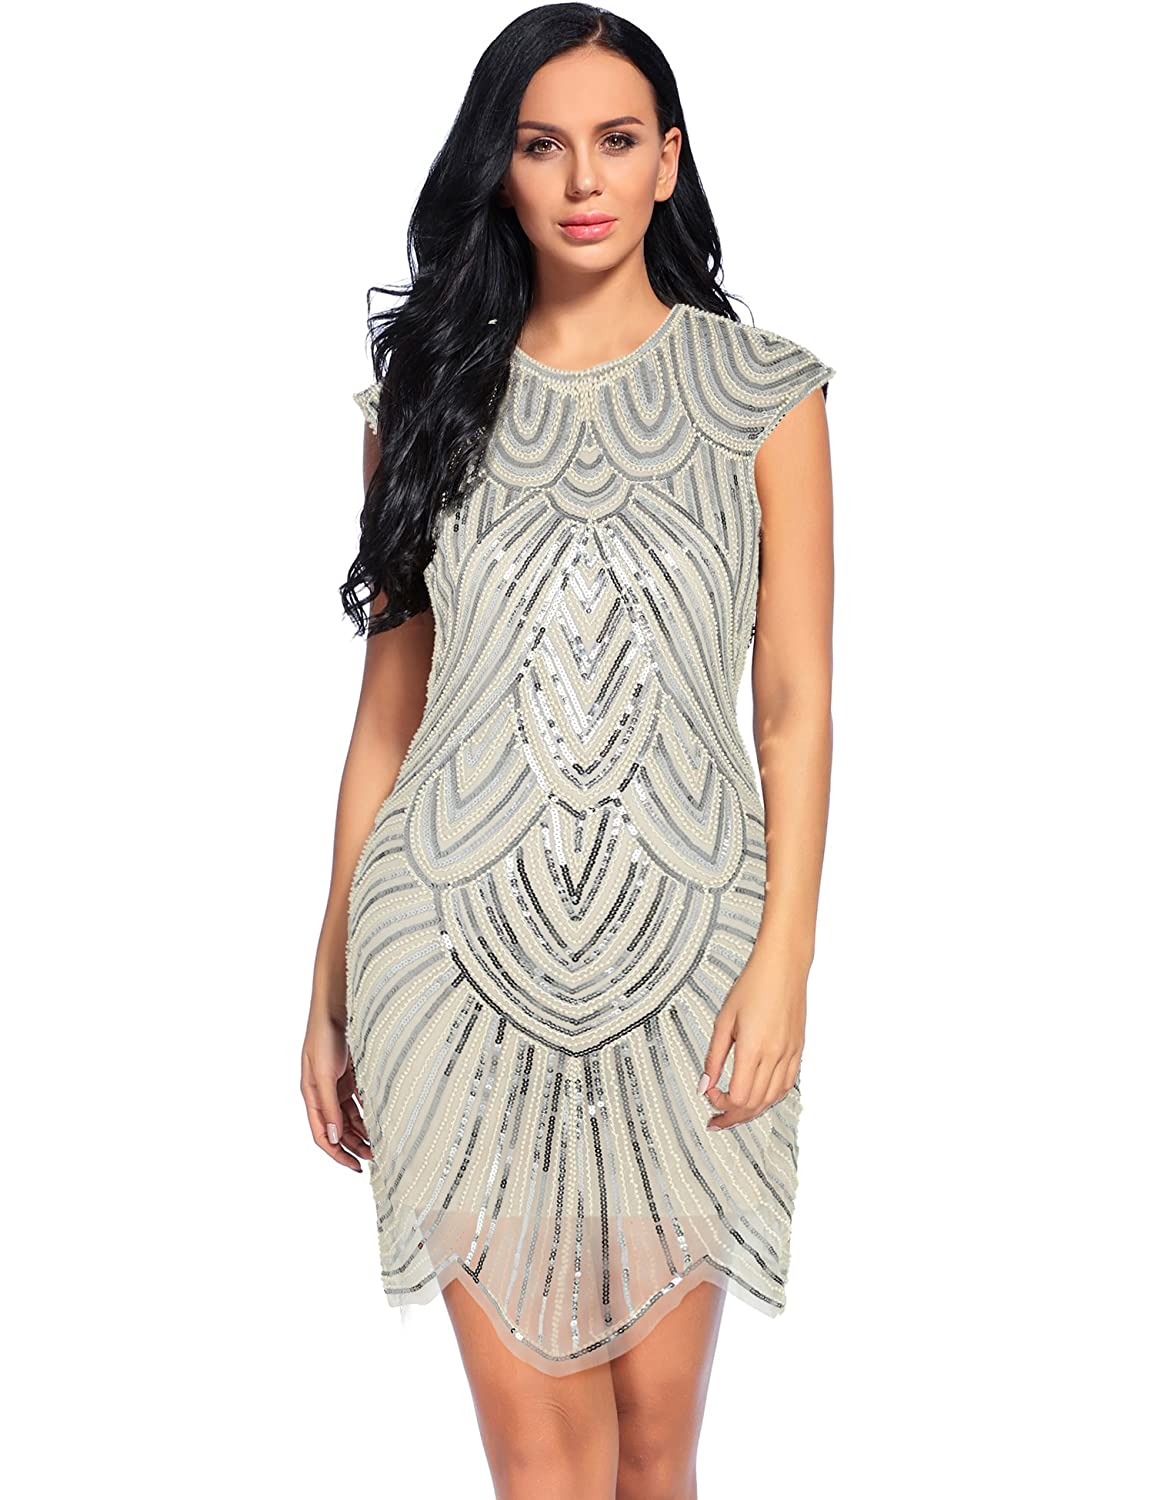 00fbb80b81 1920s Dress Great Gatsby Sequin Embellished Mesh Flapper Cocktail Dresses  at Amazon Women s Clothing store